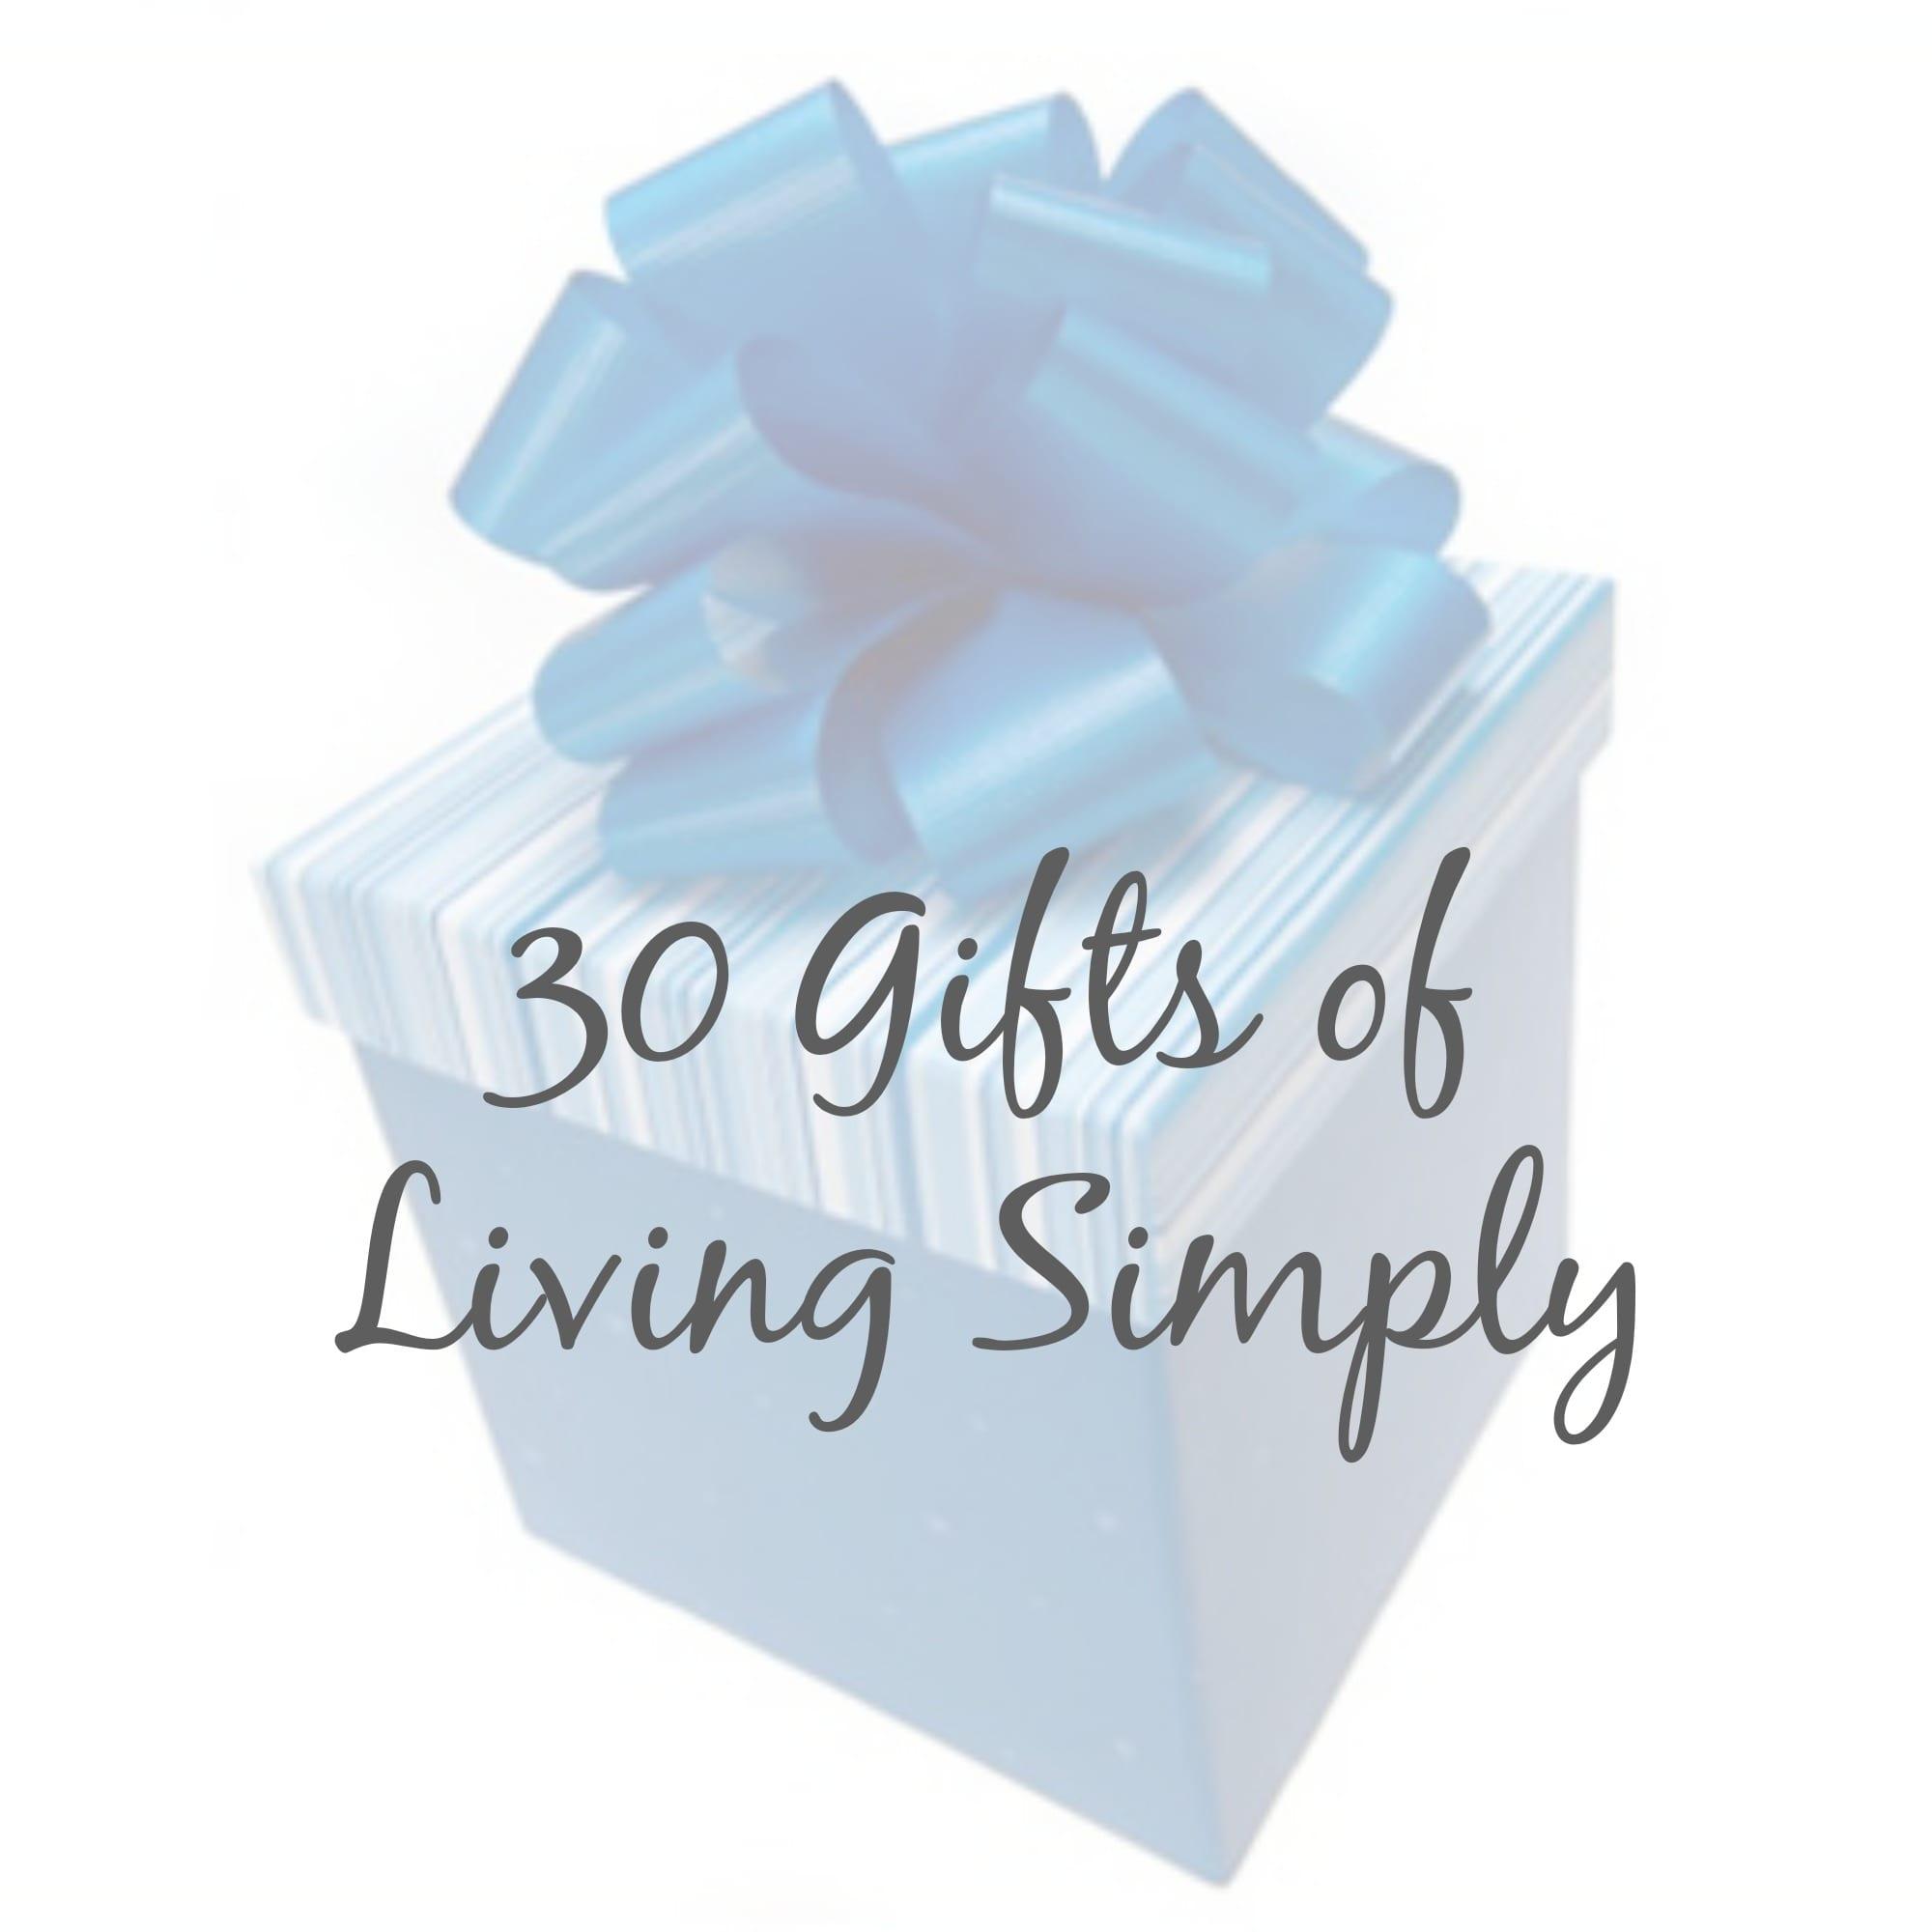 living simply gifts